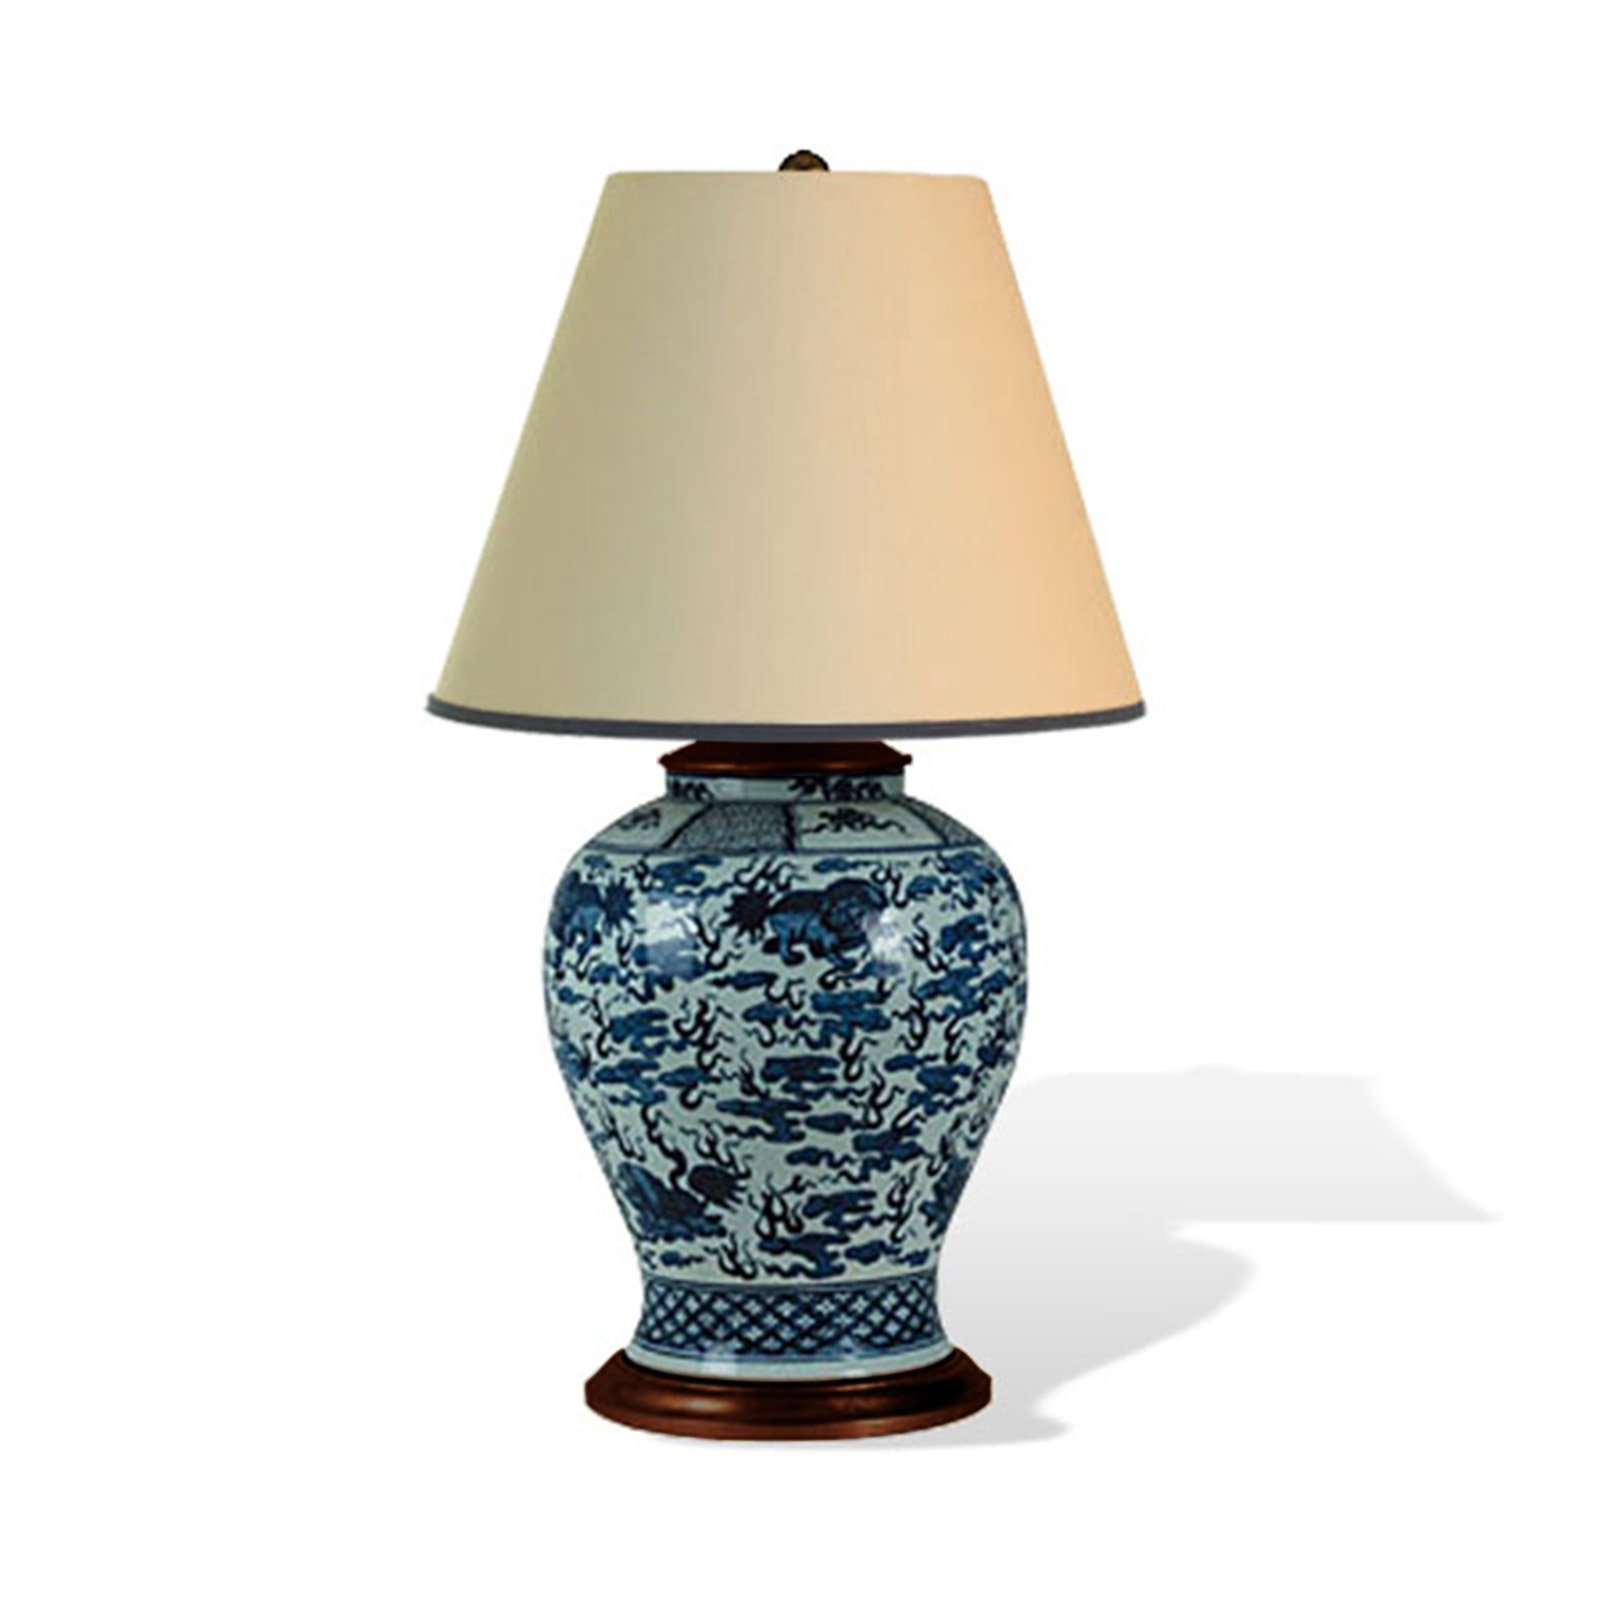 BLUE DRAGON TABLE LAMP